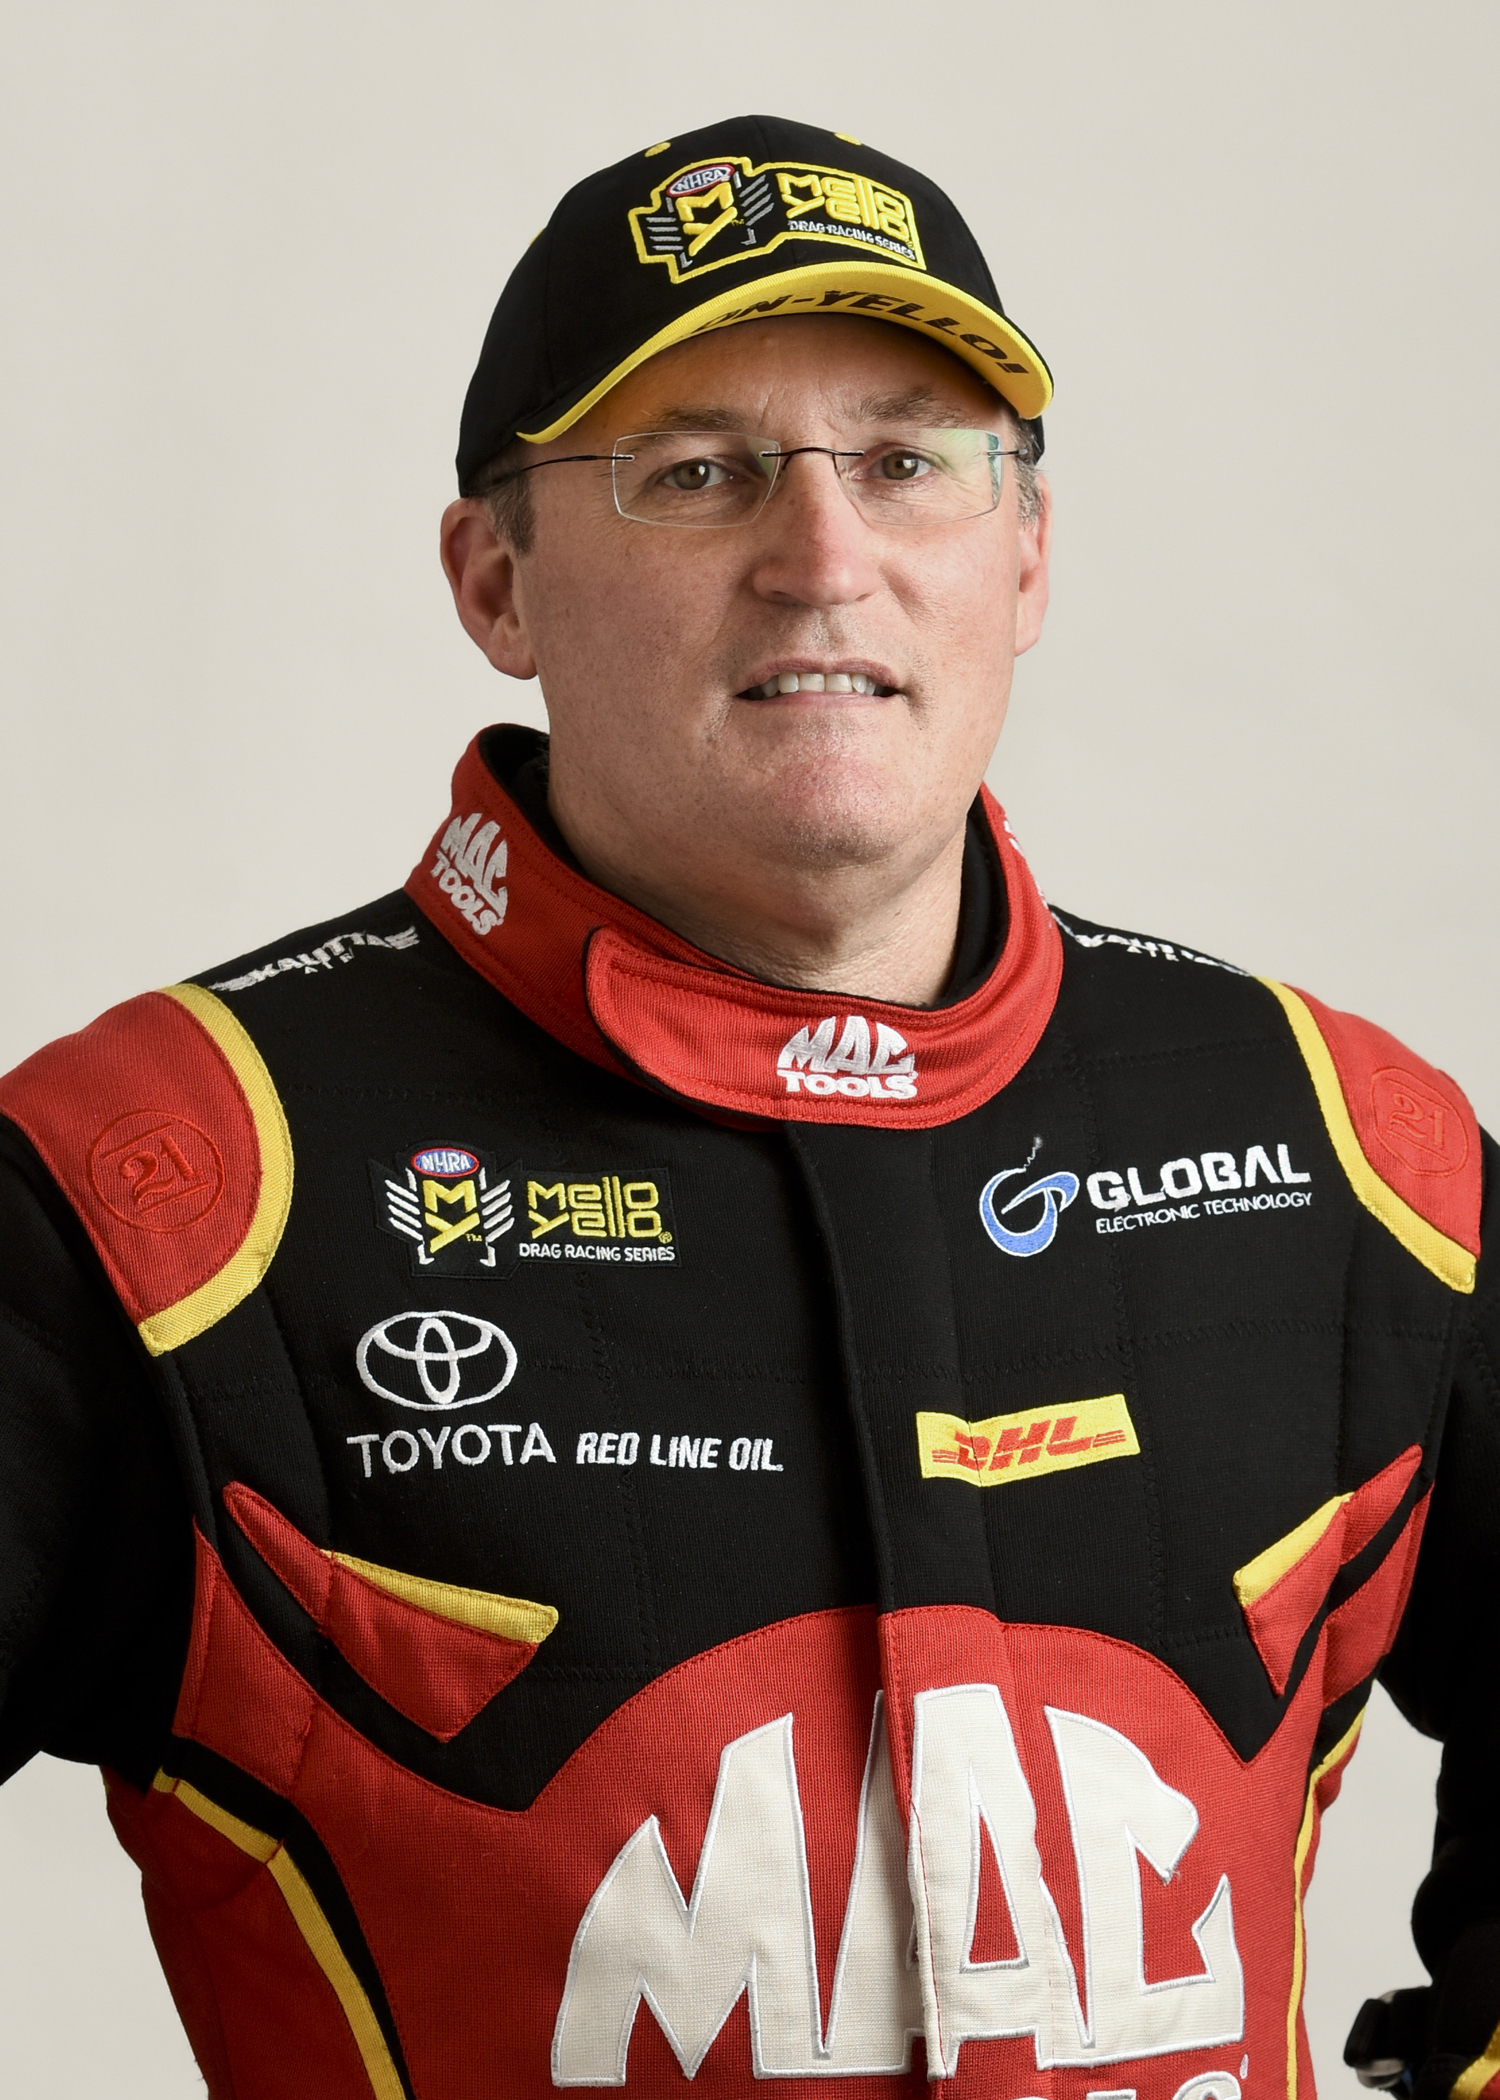 NHRA Top Fuel Doug Kalitta